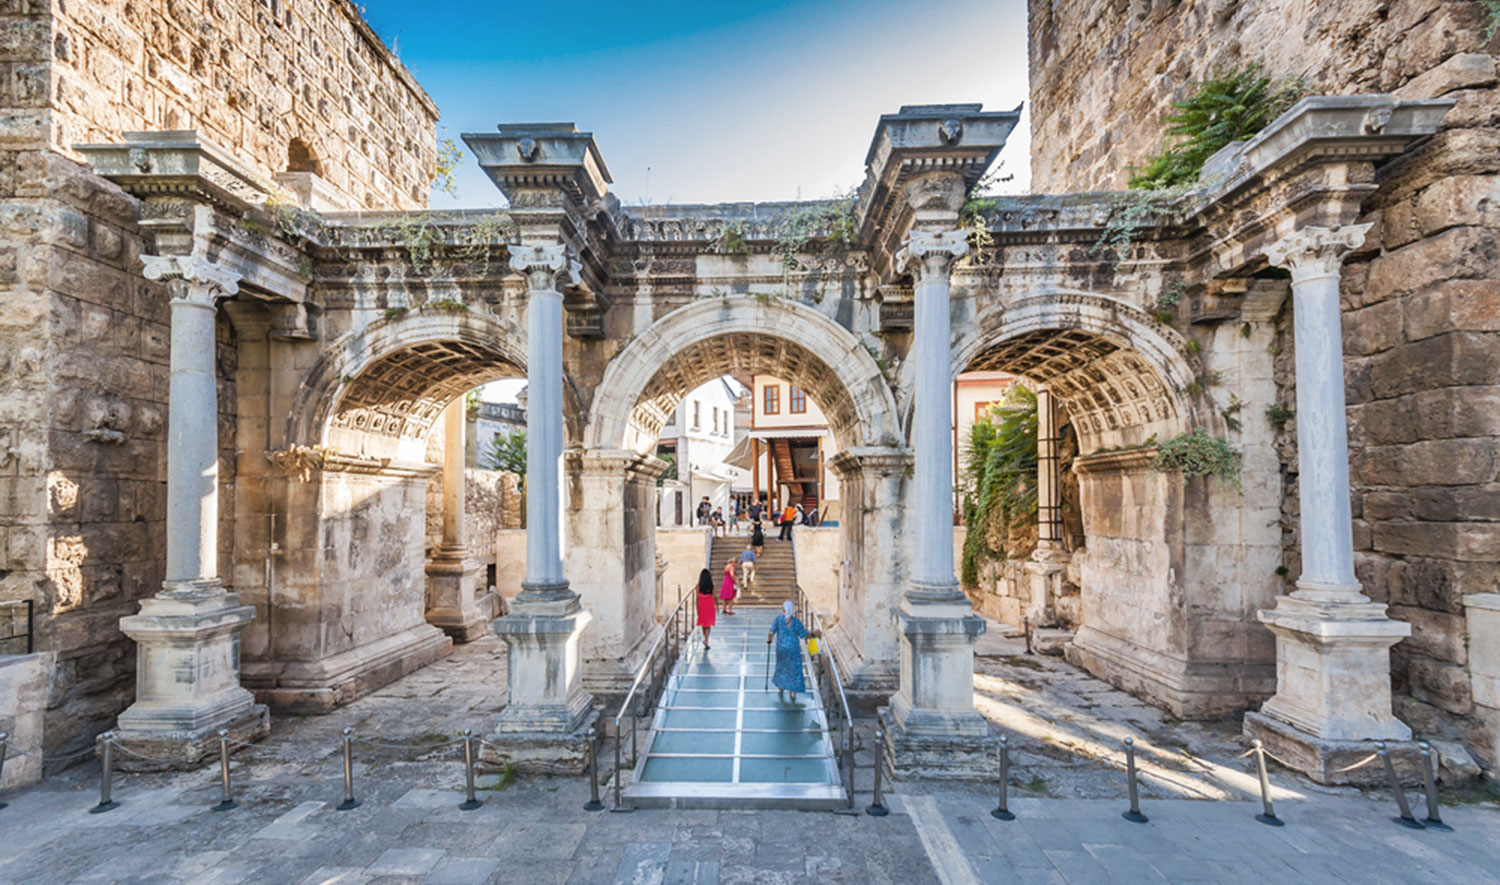 Hadrian's Gate is located right on Atatürk Boulevard in Antalya's city center